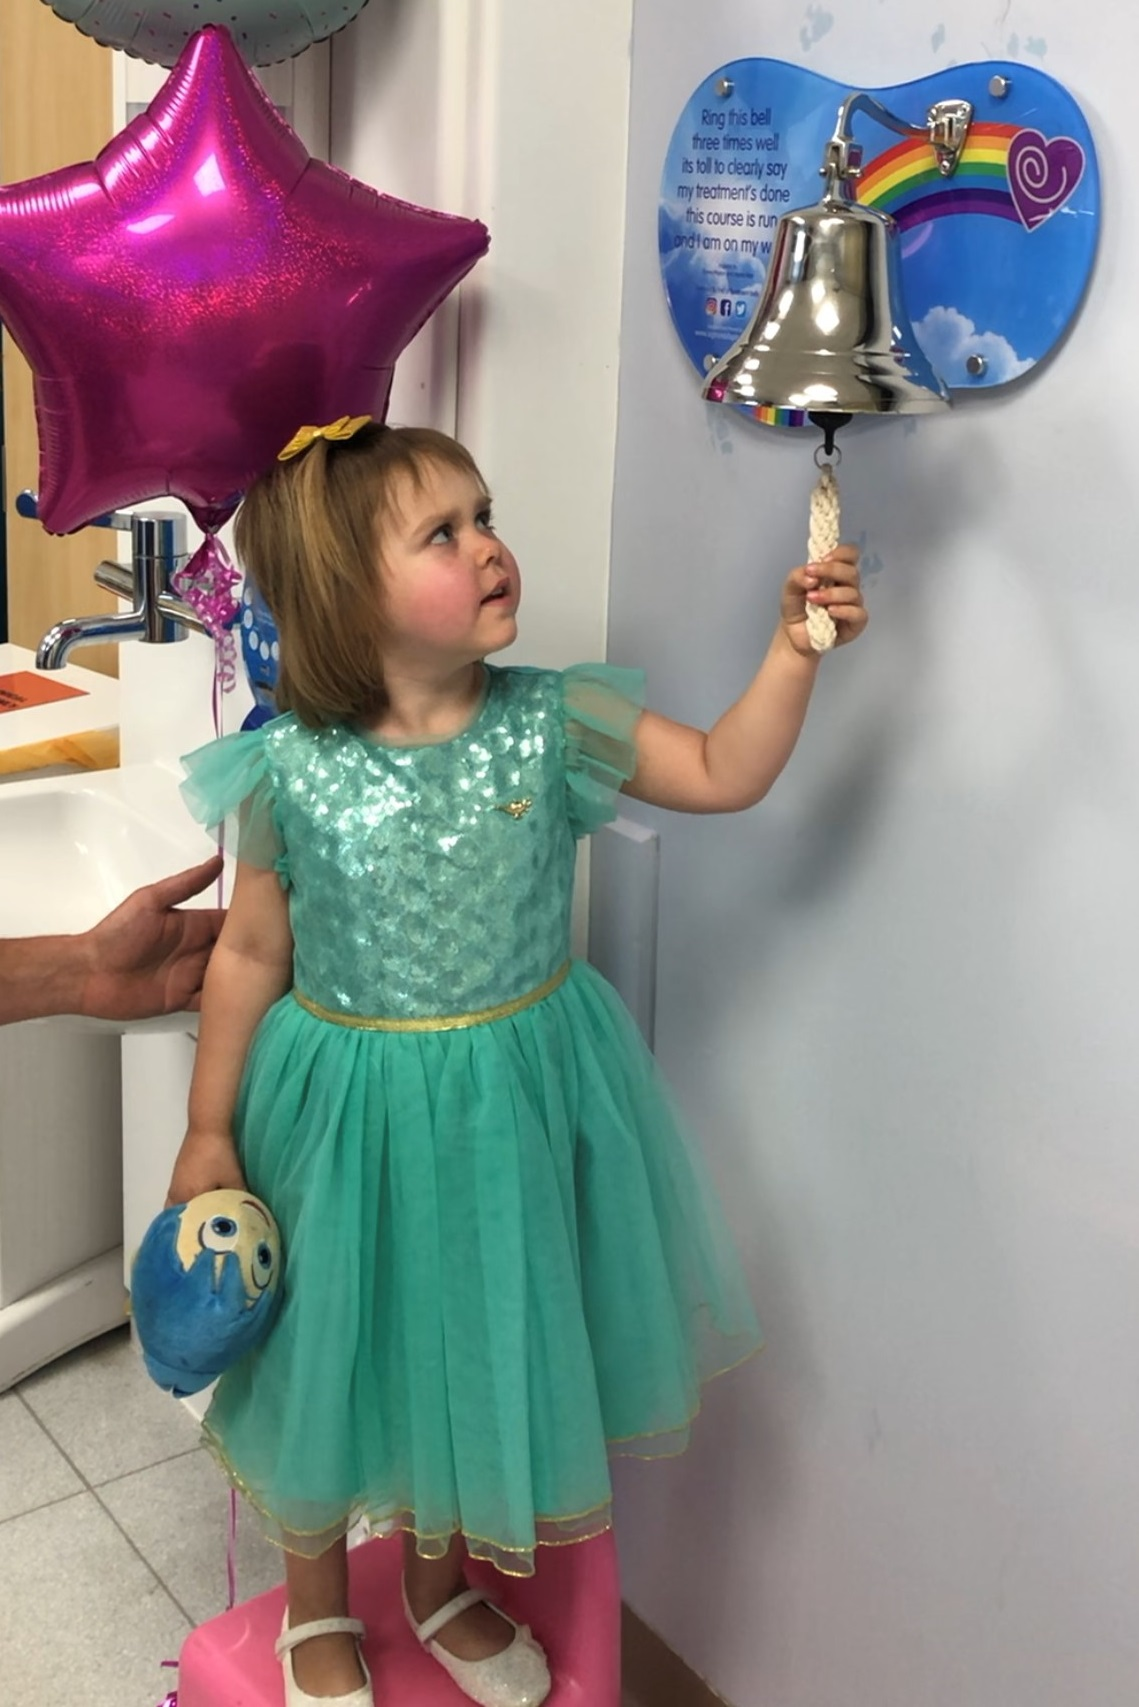 Sophia rings a silver bell that's mounted on a wall